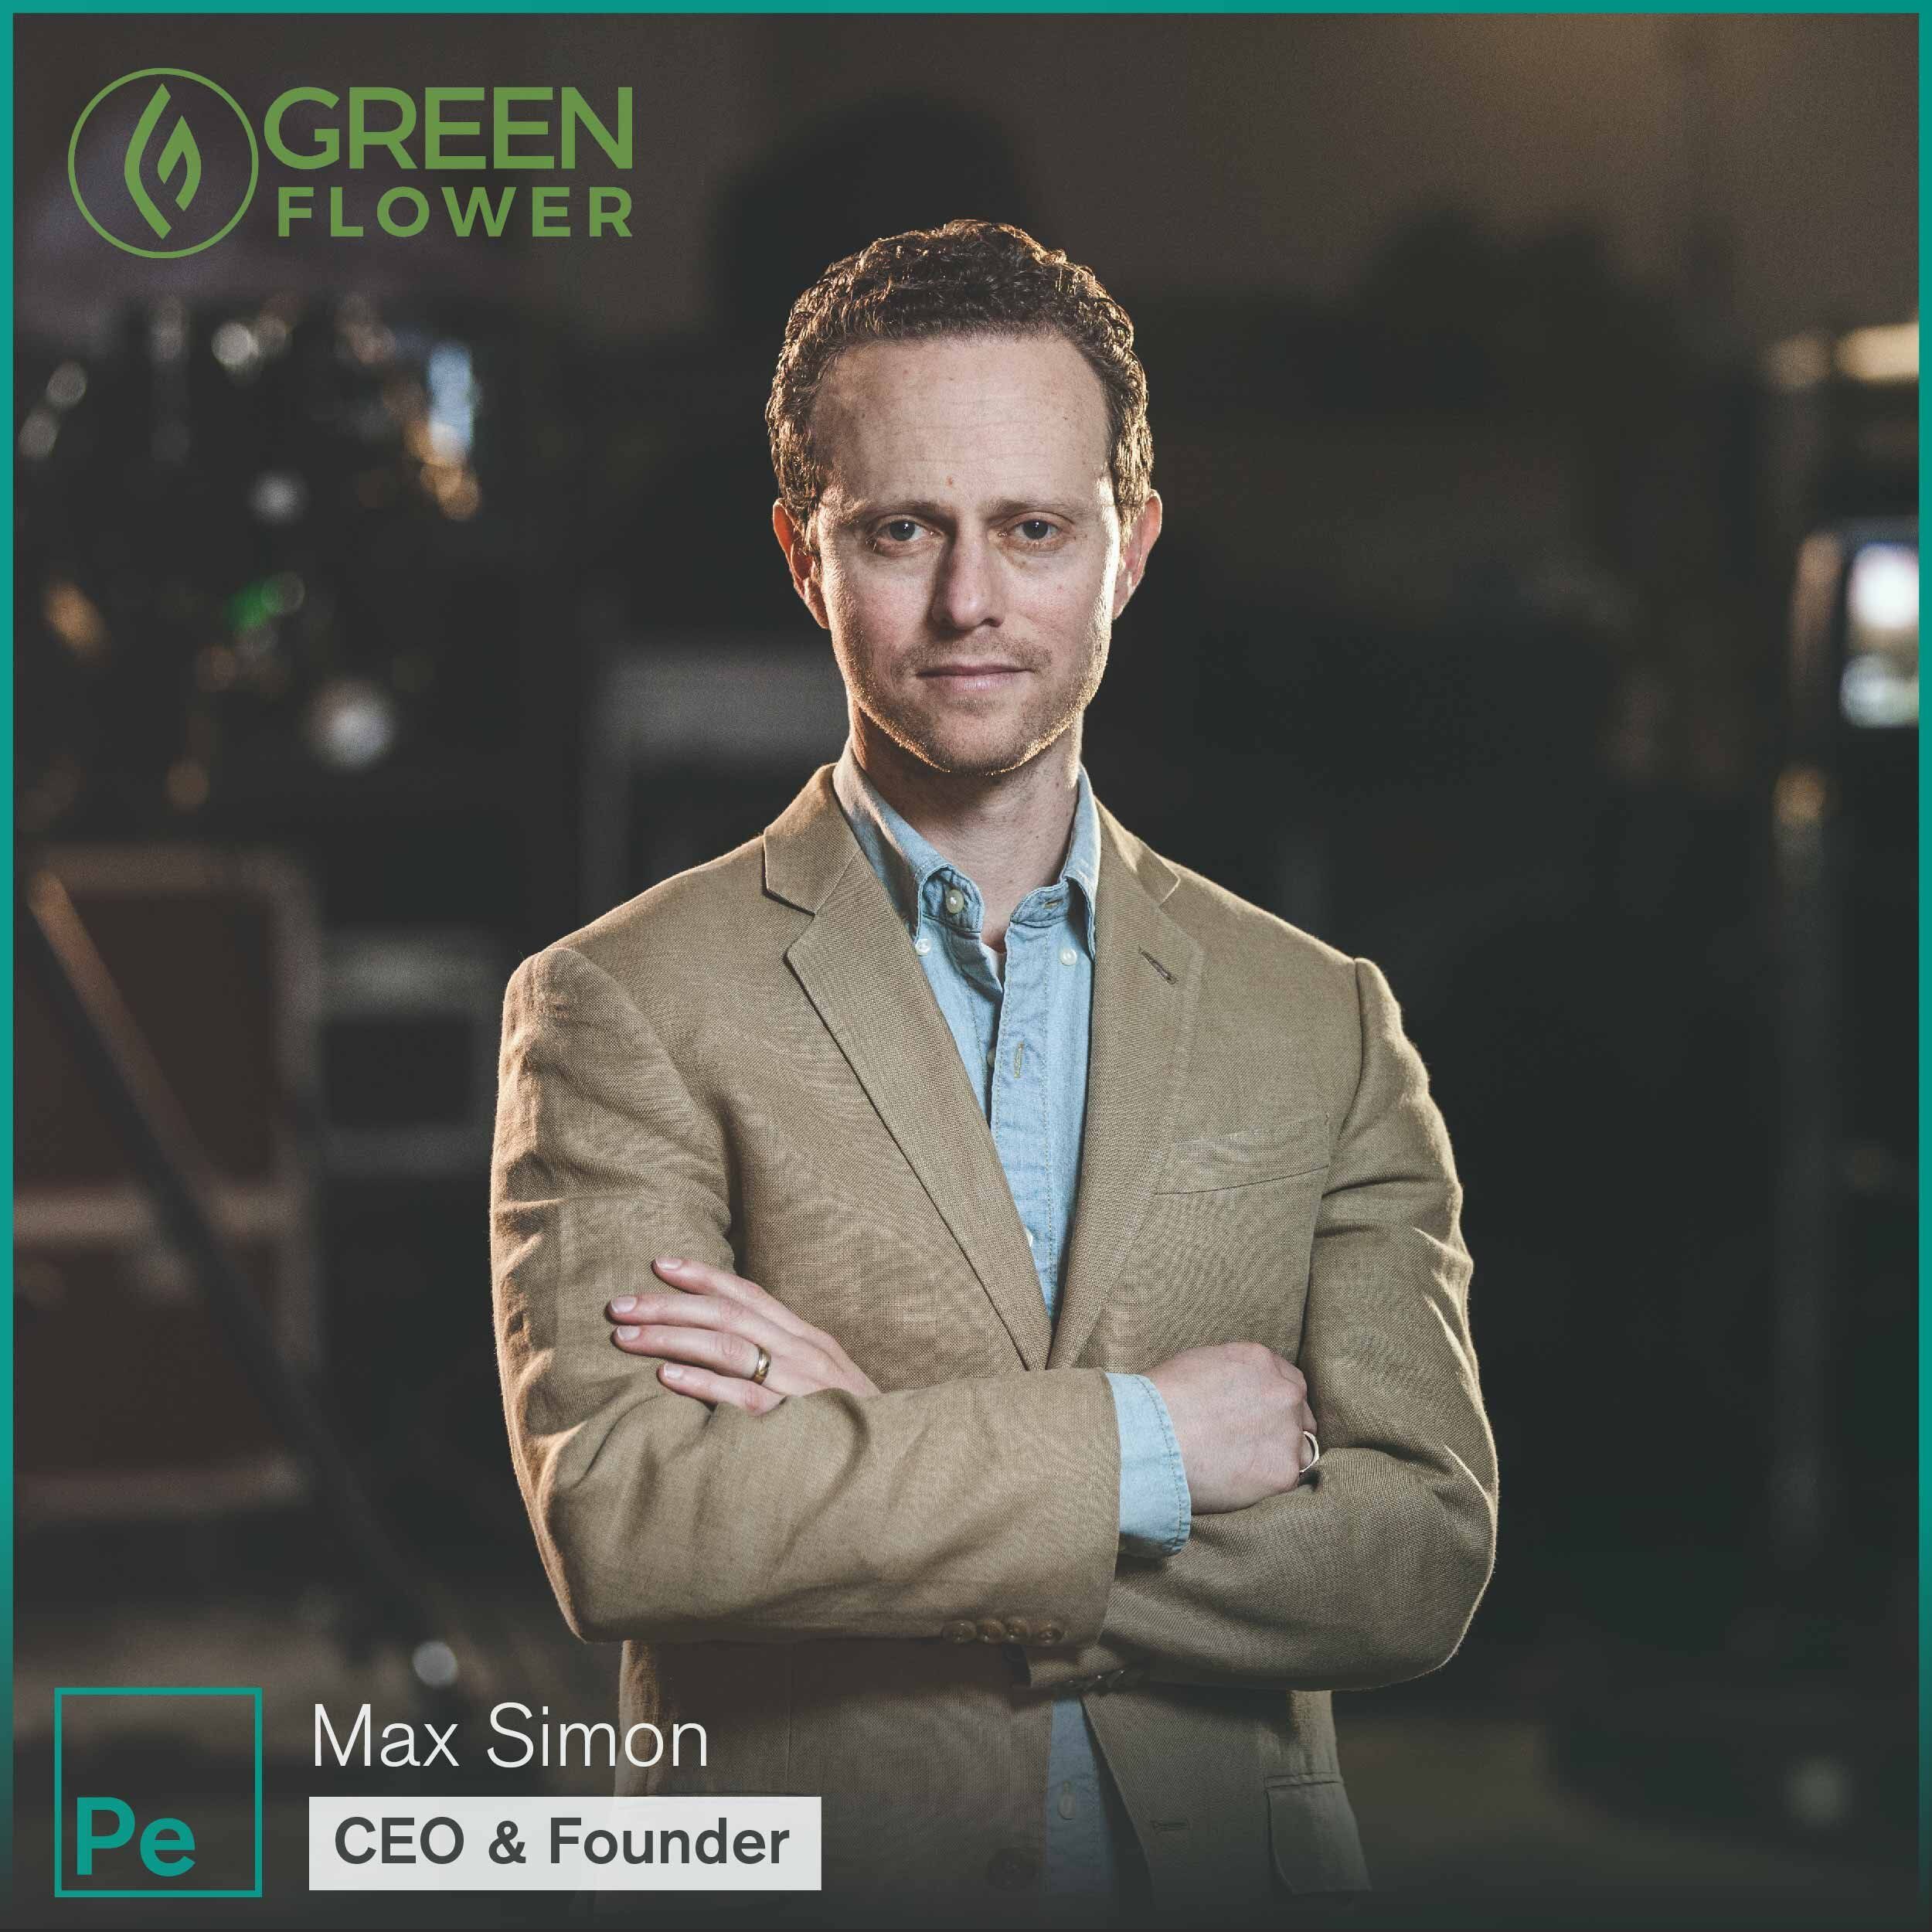 Max Simon, CEO of Green Flower Media, an educational platform with quality educational content for cannabis industry insiders, aspiring cannabis entrepreneurs, and consumers of recreational and medicinal needs alike, discusses the importance of building a loyal tribe of fans around your business.